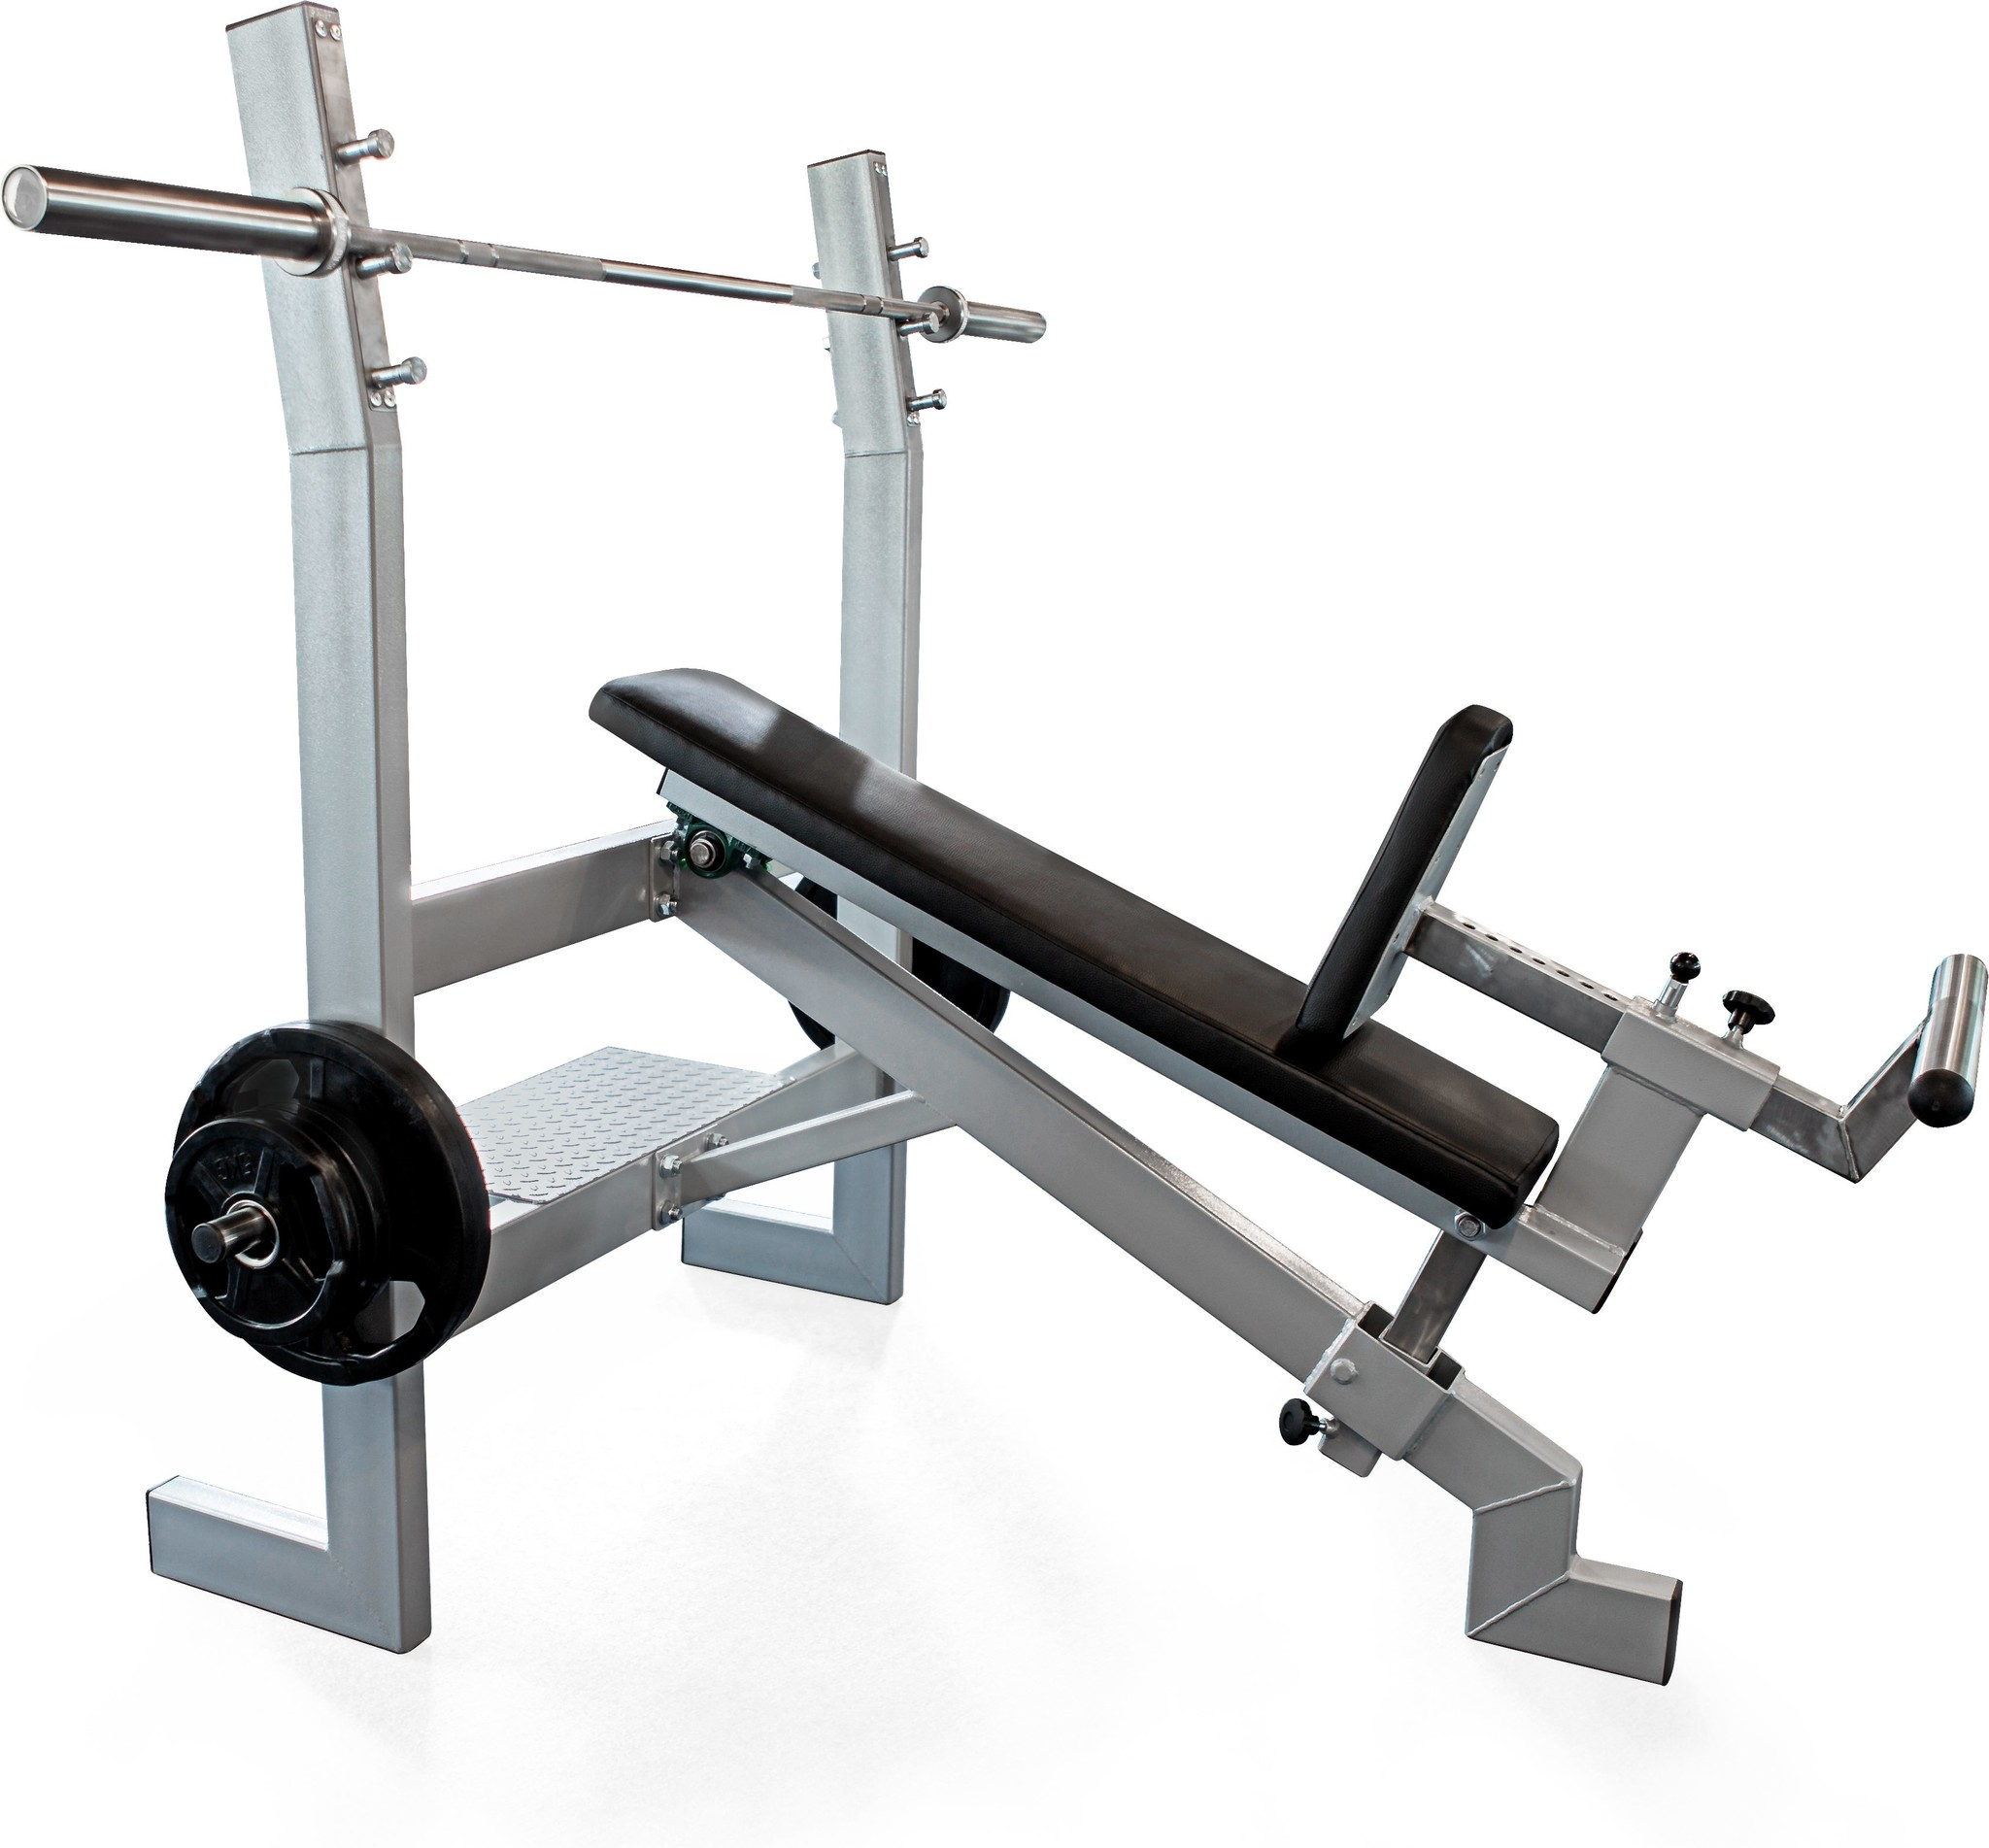 2ax incline Bench